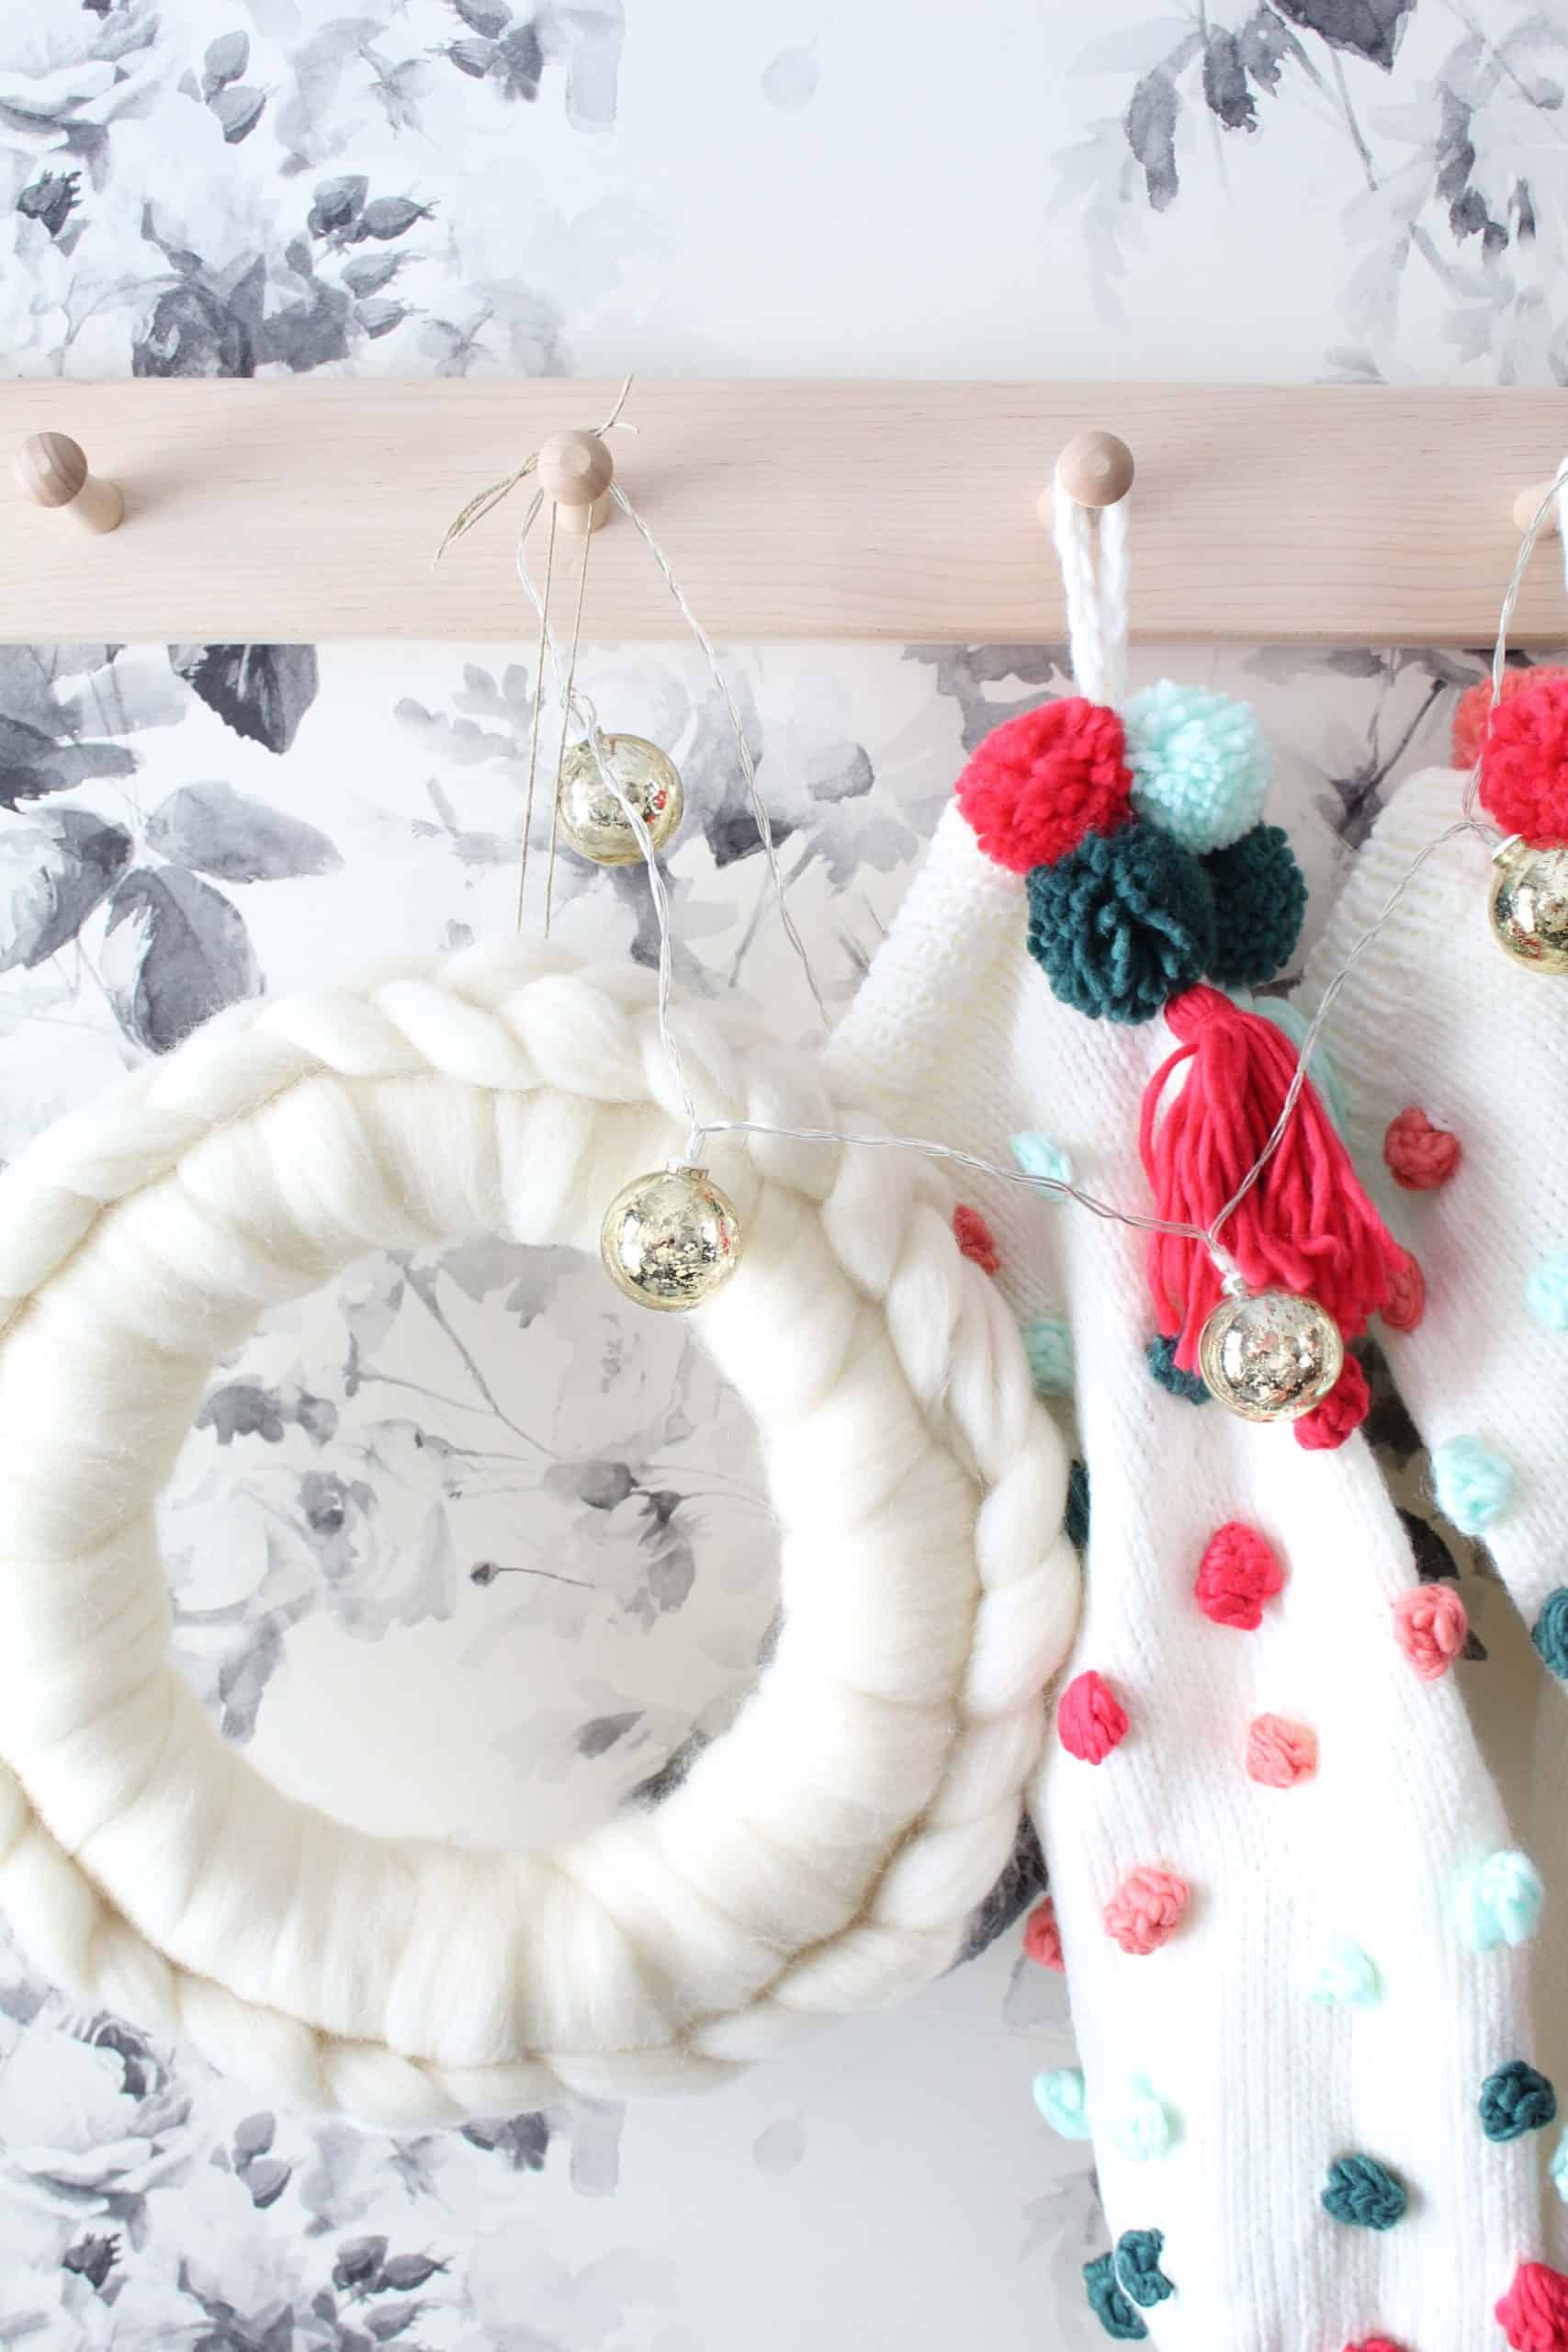 anthropologie white wool wreath, anthropologie christmas wreath, diy anthropologie wreath, anthropologie pom pom christmas stockings, smoky rose wallpaper by house of hackney